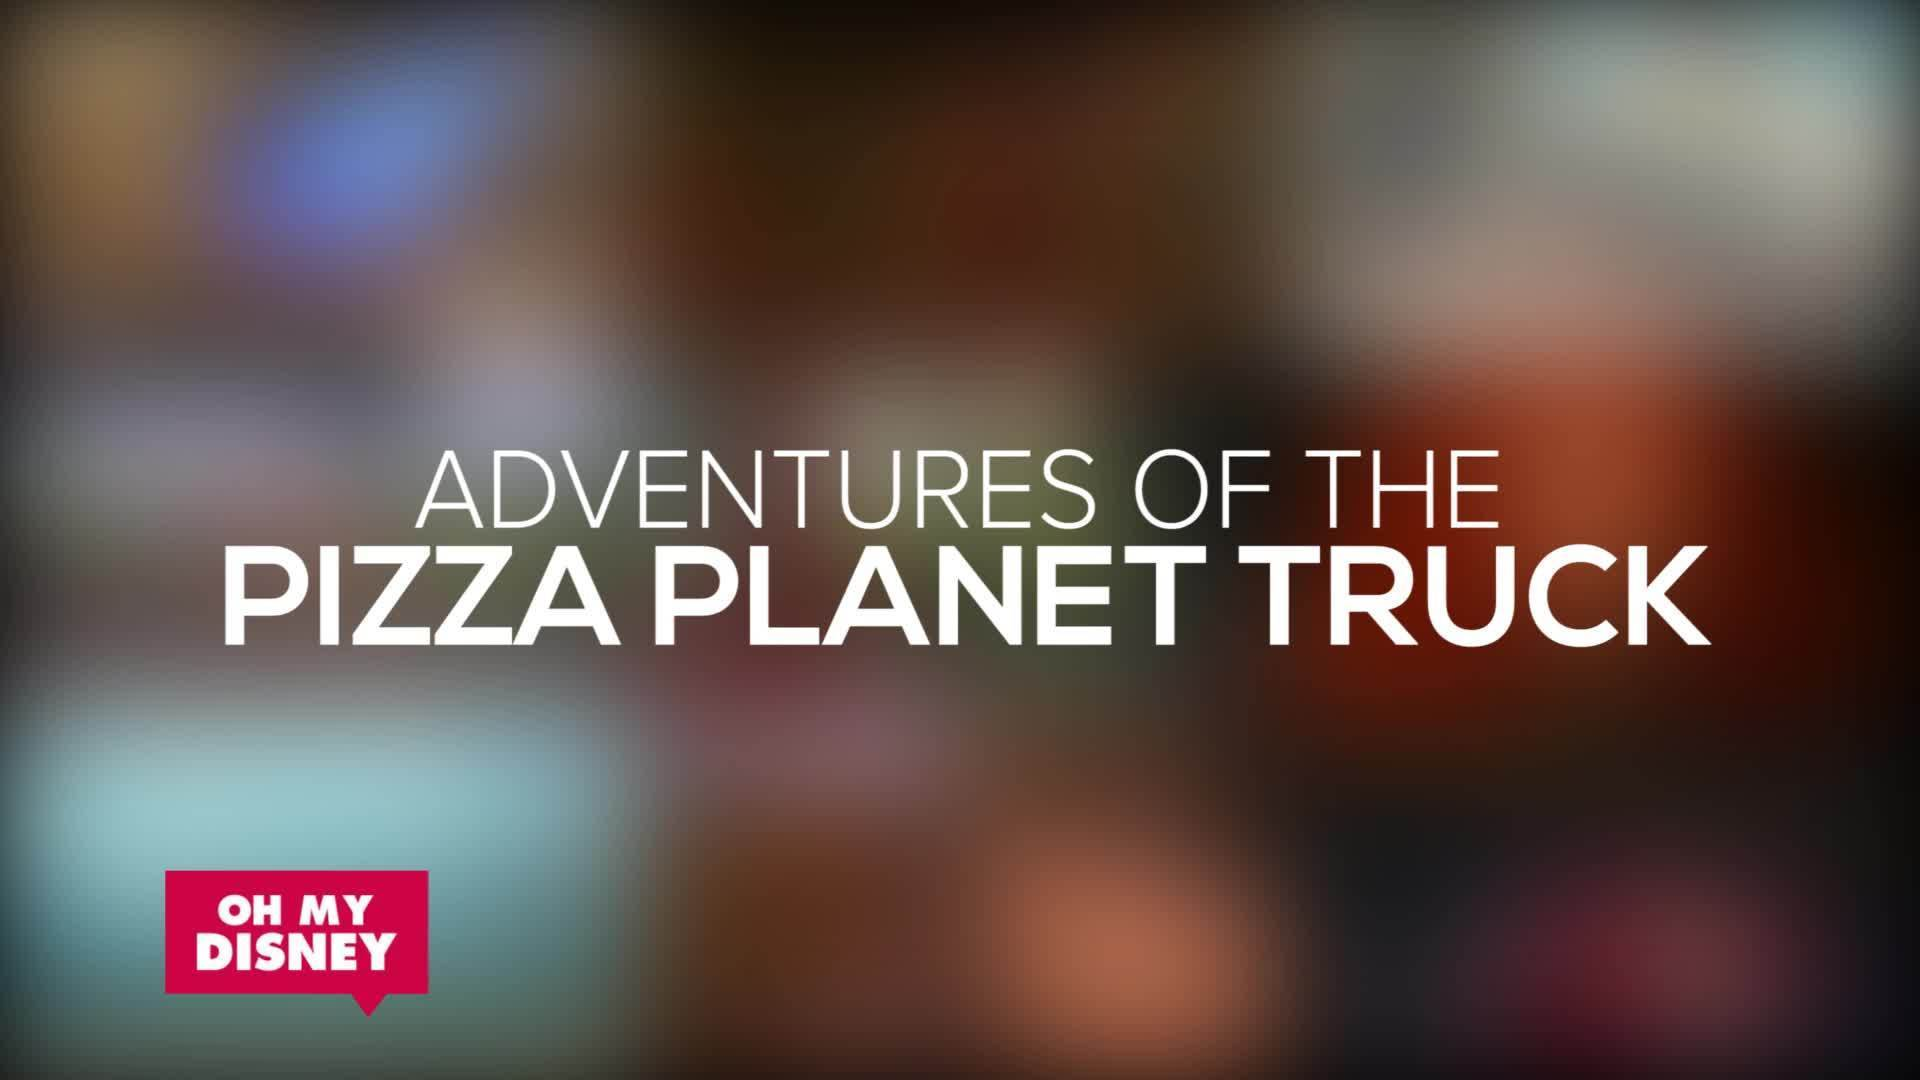 Adventures of Pizza Planet